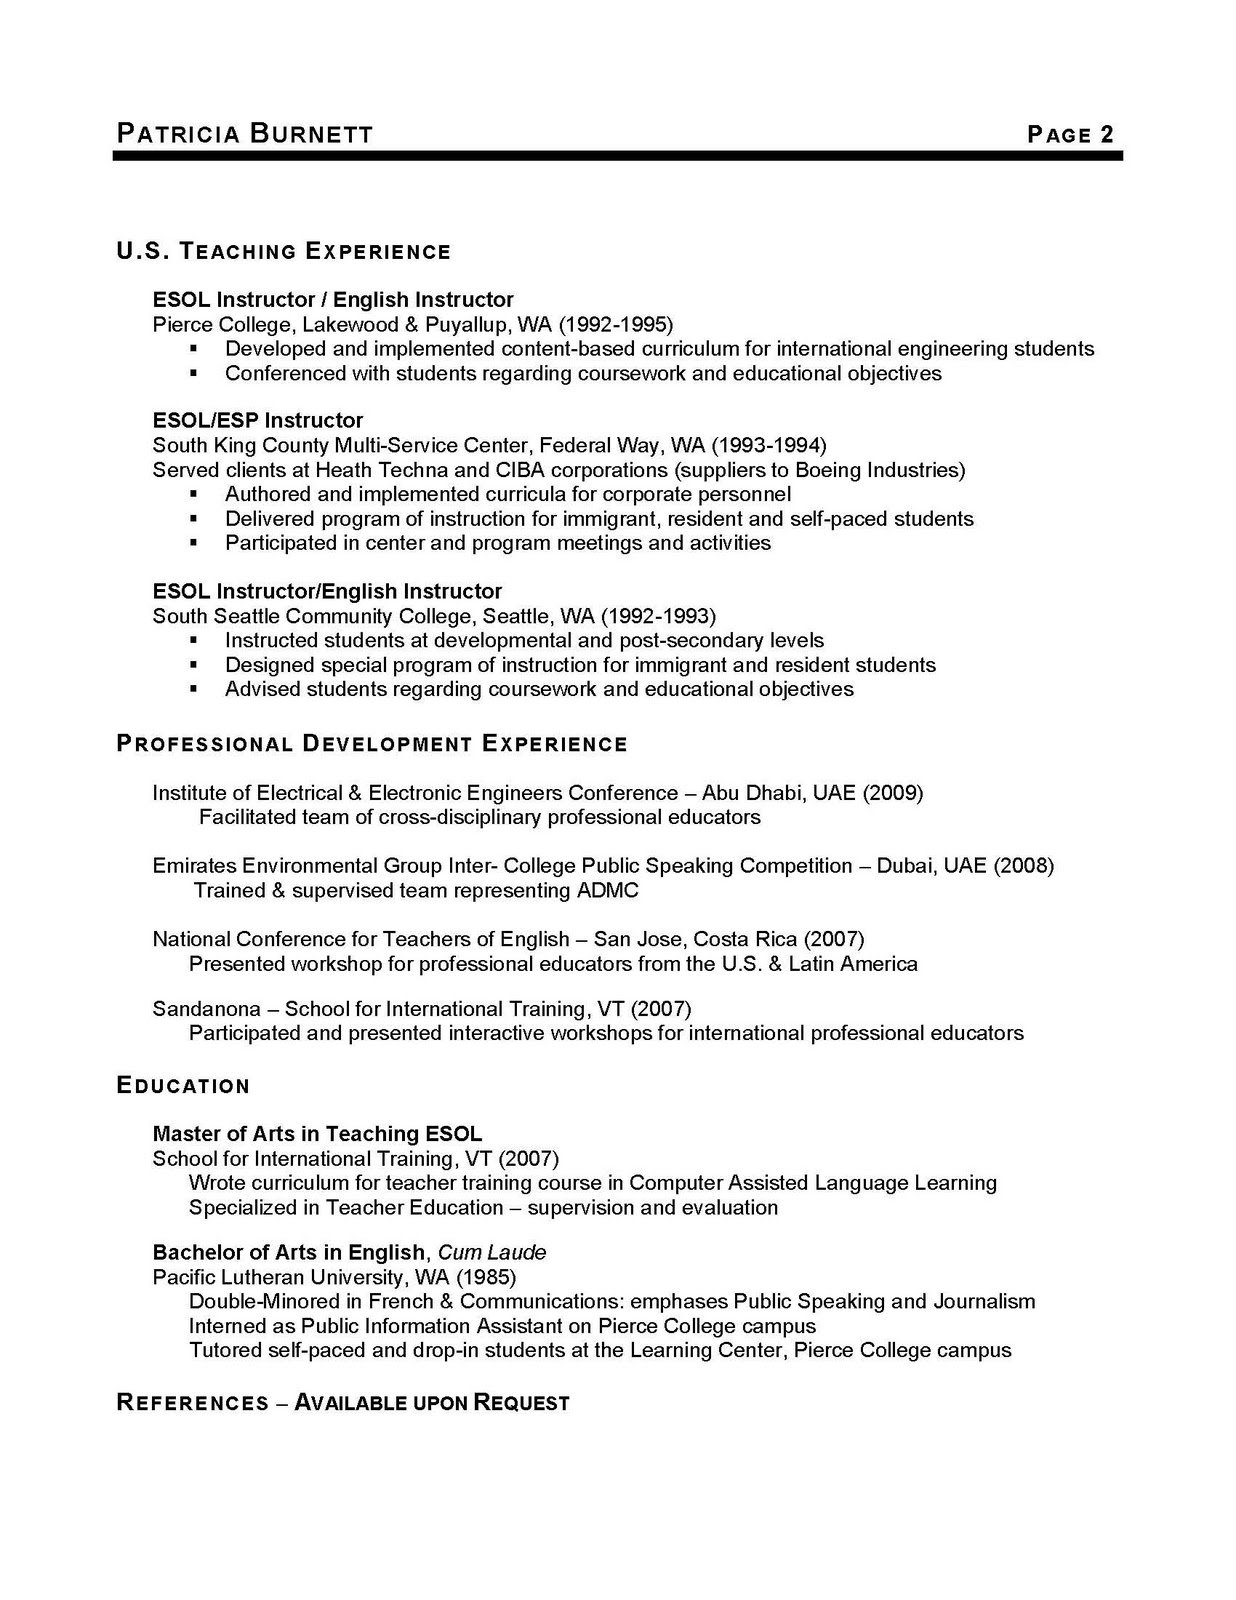 George Washington Resume Cinninger Ad Administrative Resume June  George Washington Resume